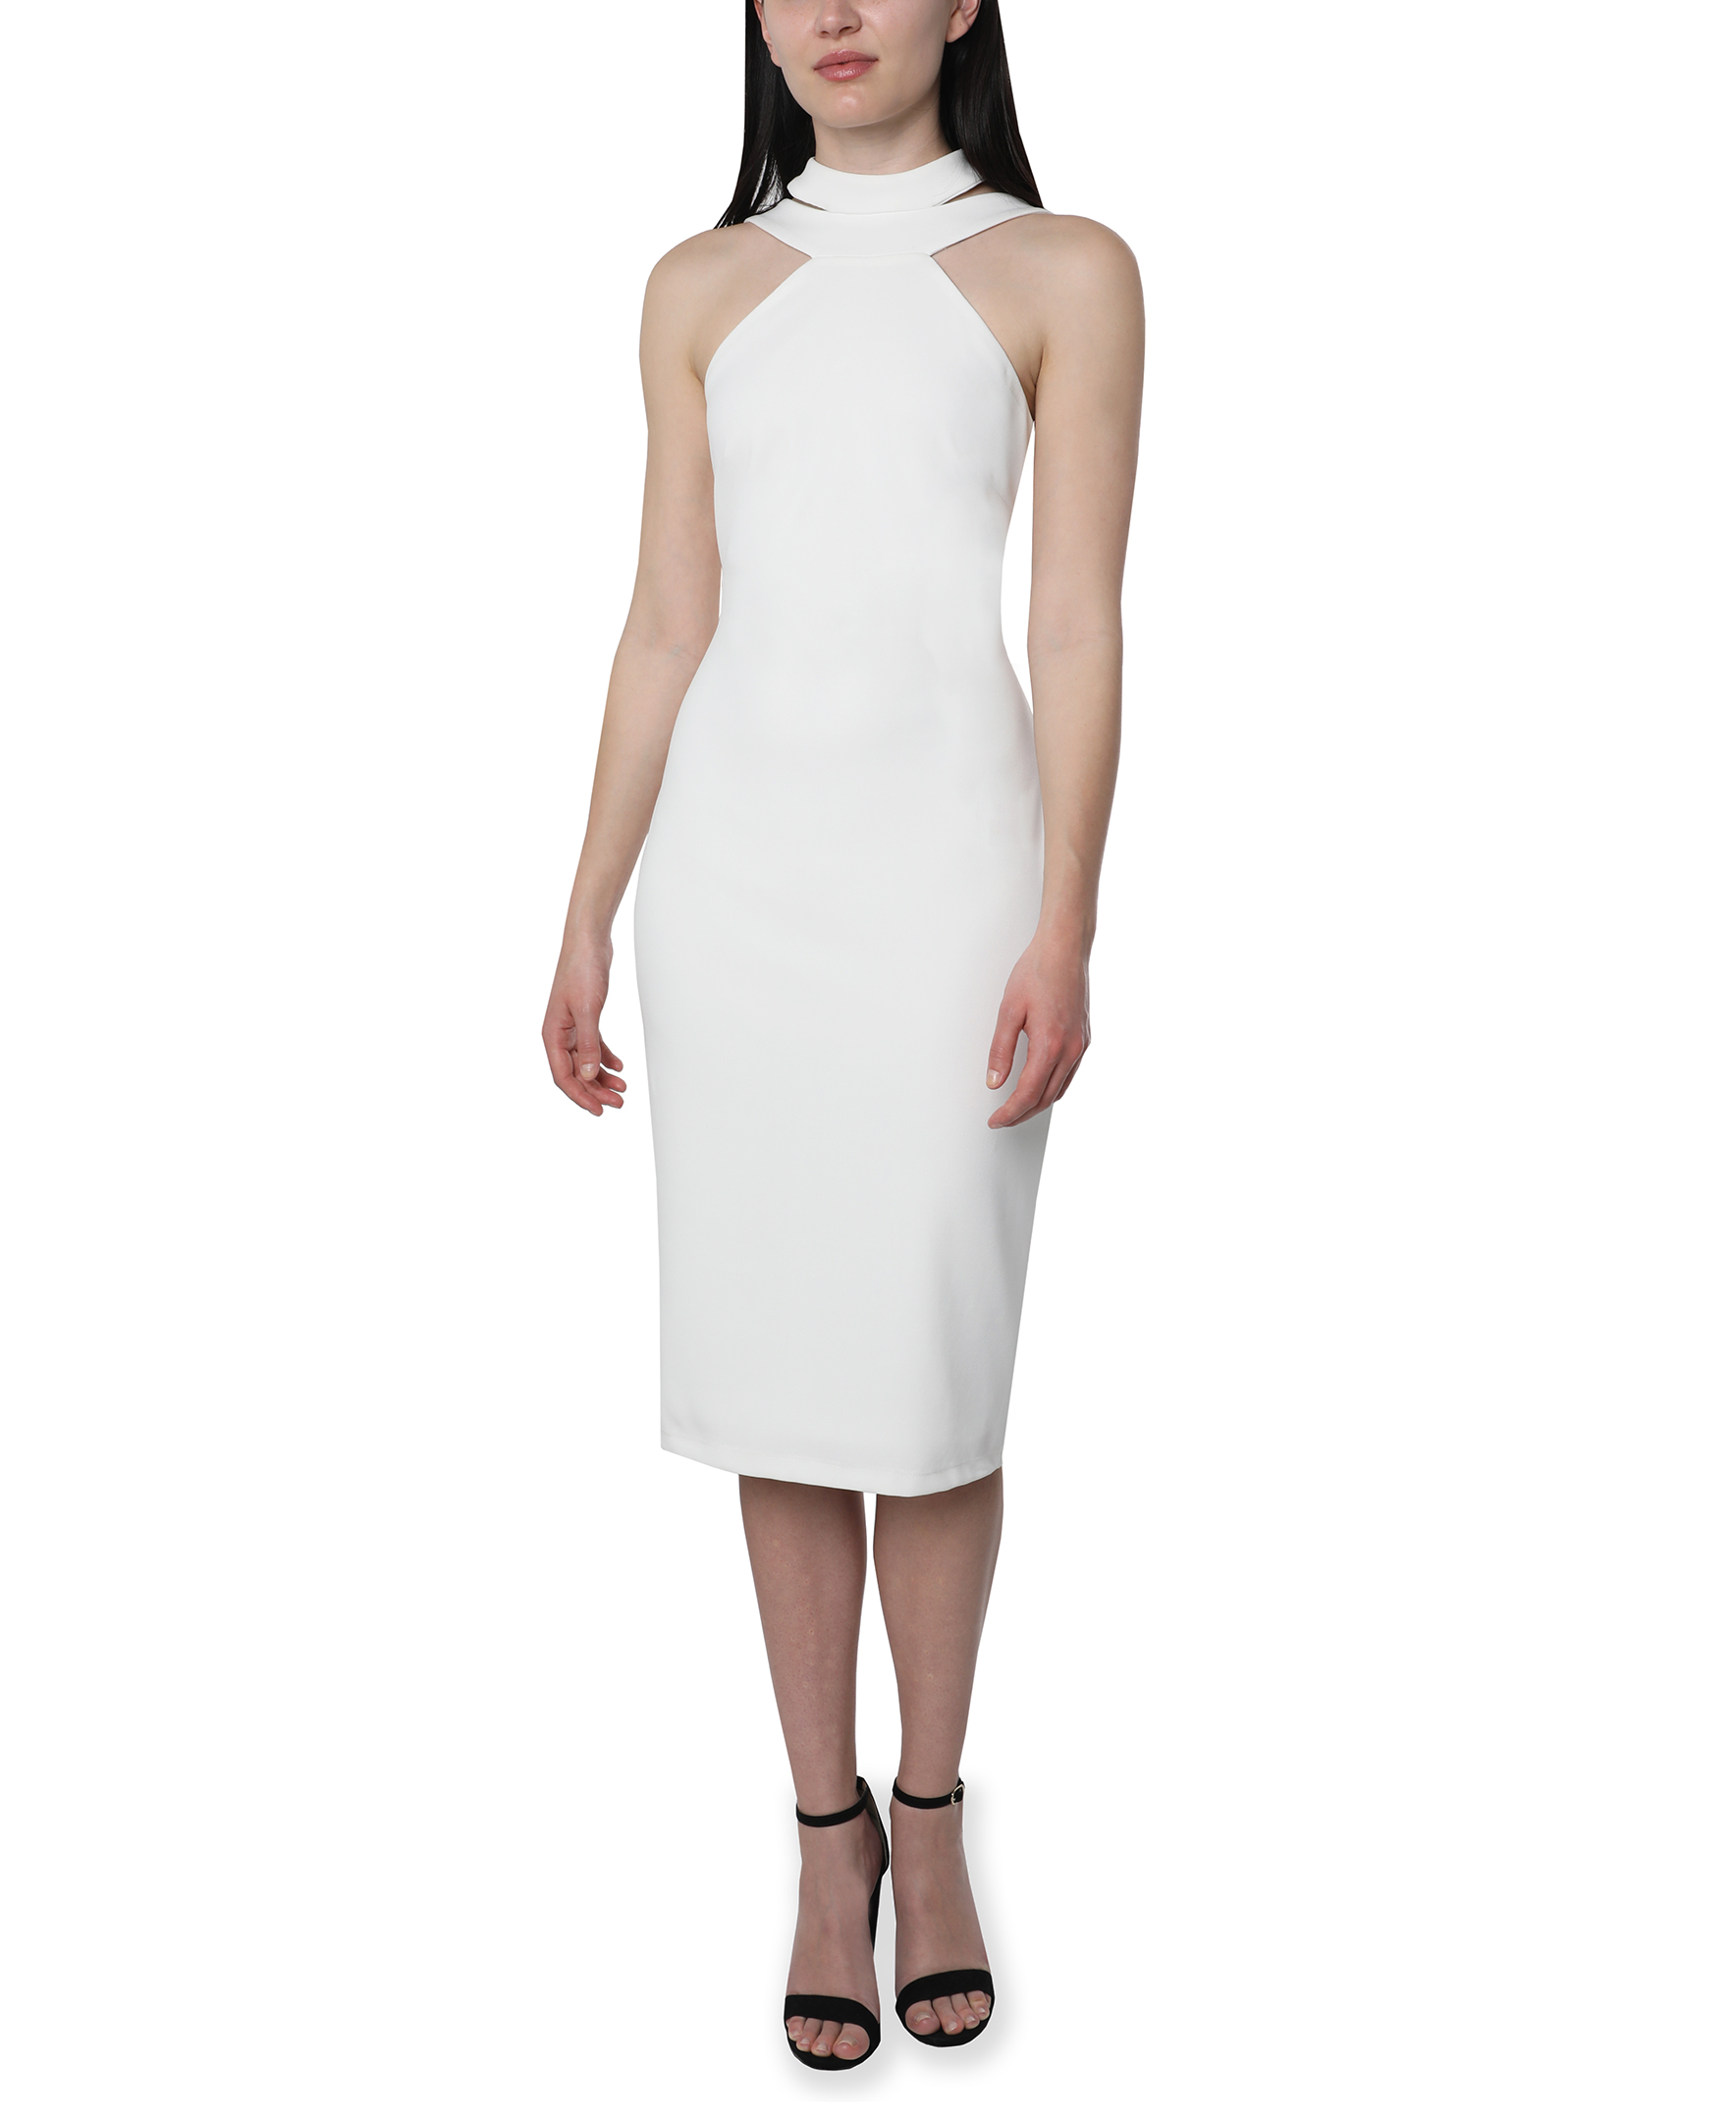 Bebe Halter Neck Midi Dress -Ivory - Front